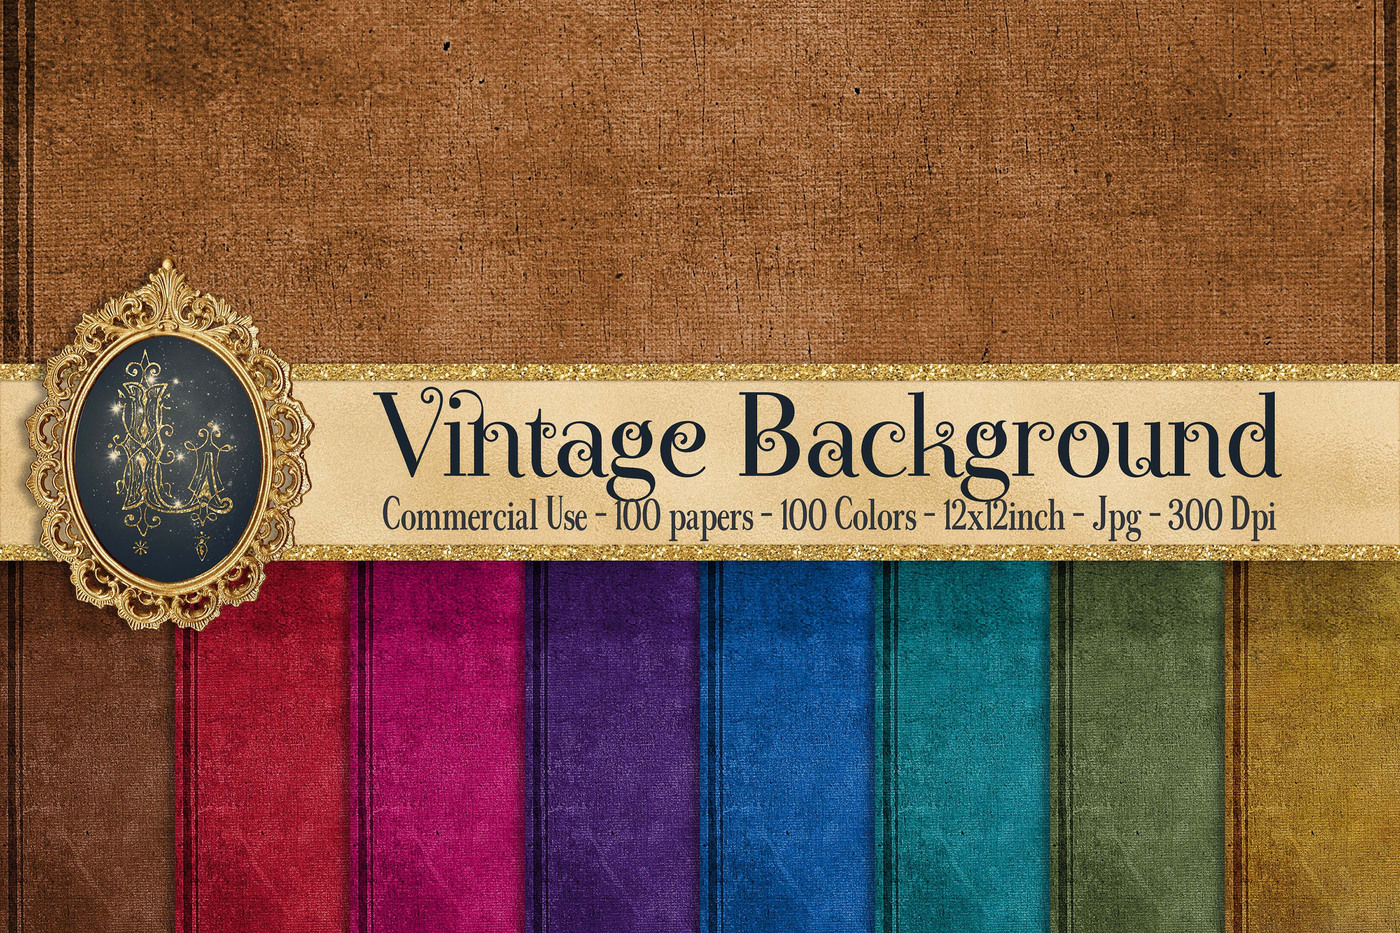 Vintage Background Antique Digital Papers In100 Colors By